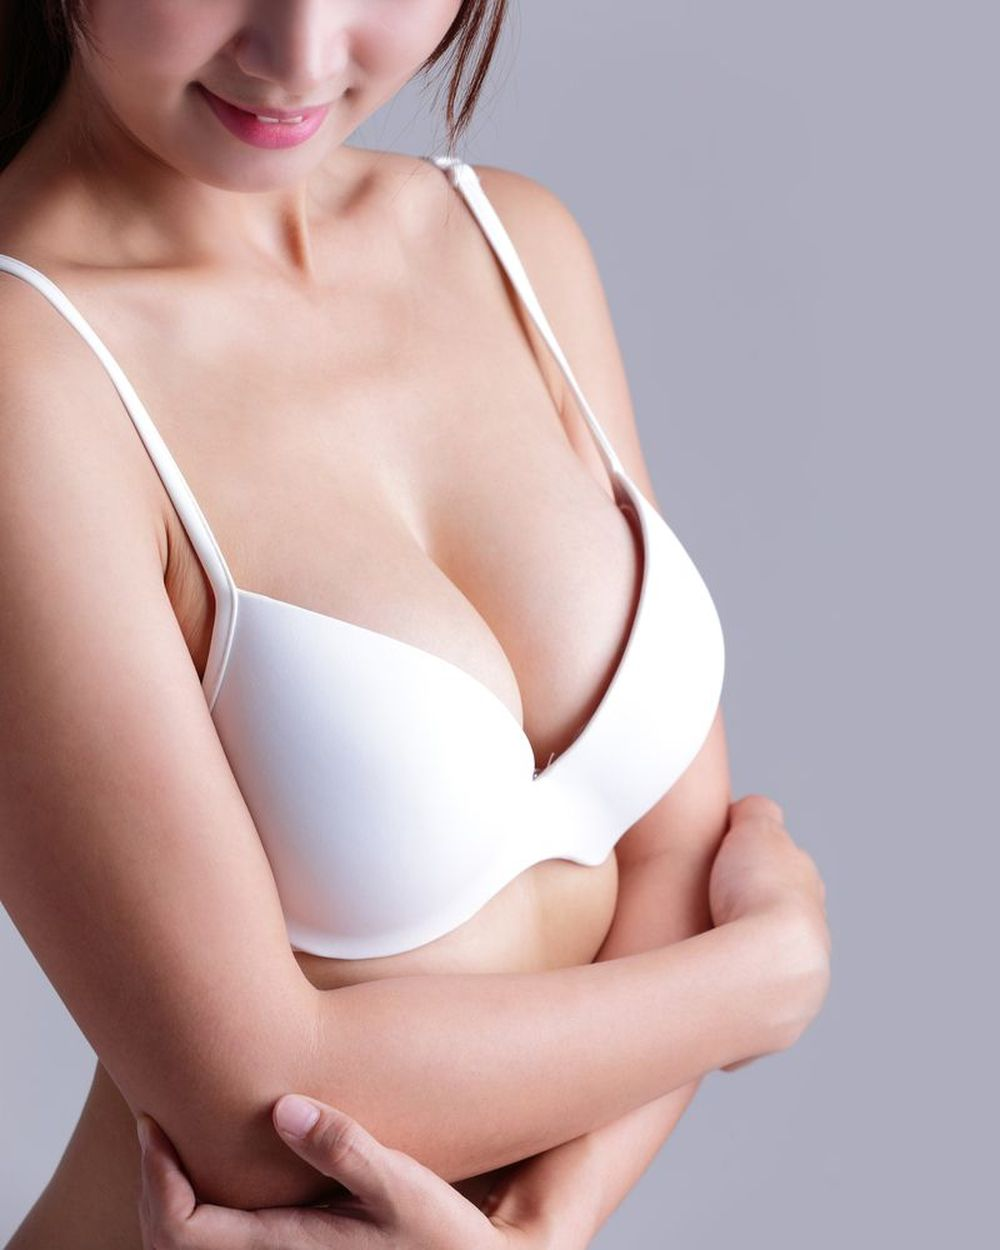 A woman in a white bra with implants